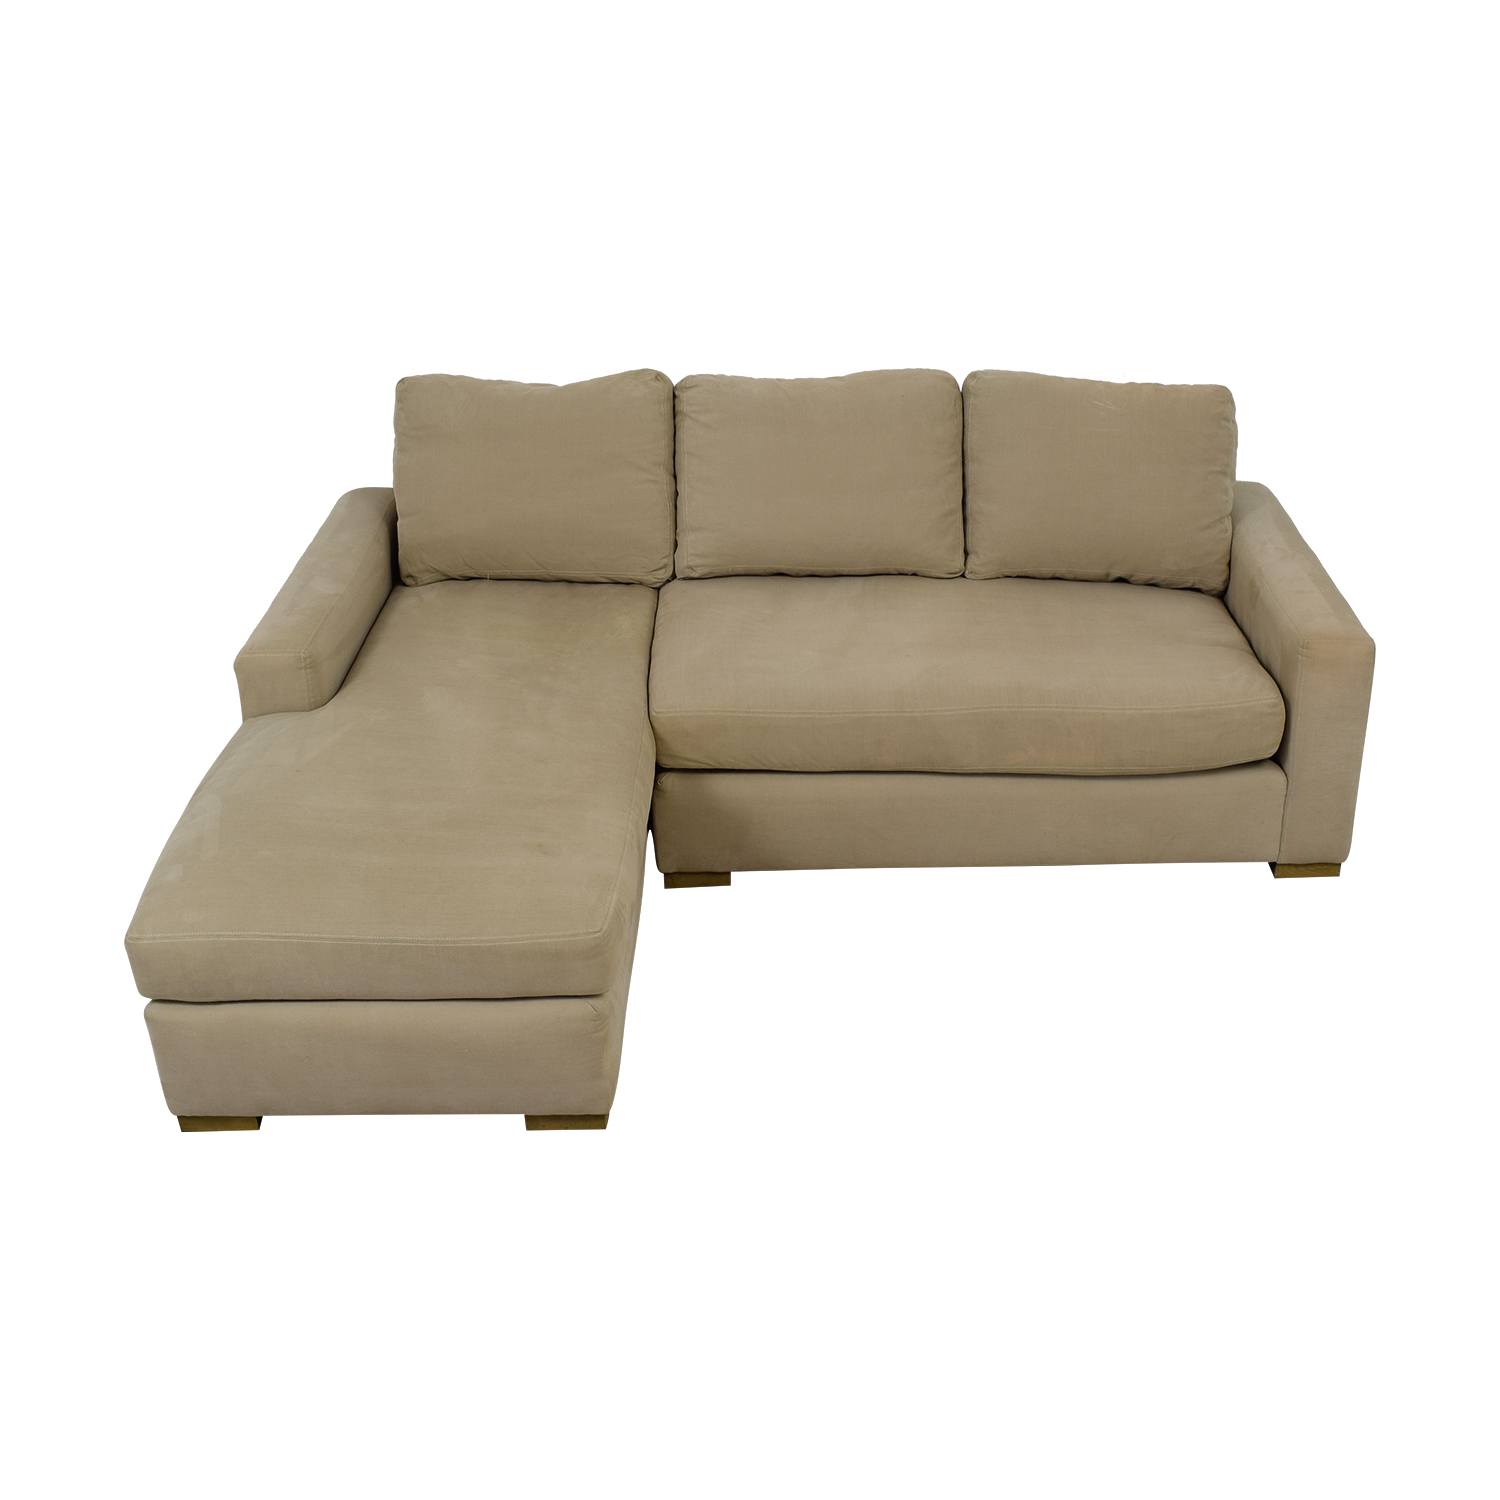 Restoration Hardware Restoration Hardware Beige Petite Chaise Sectional